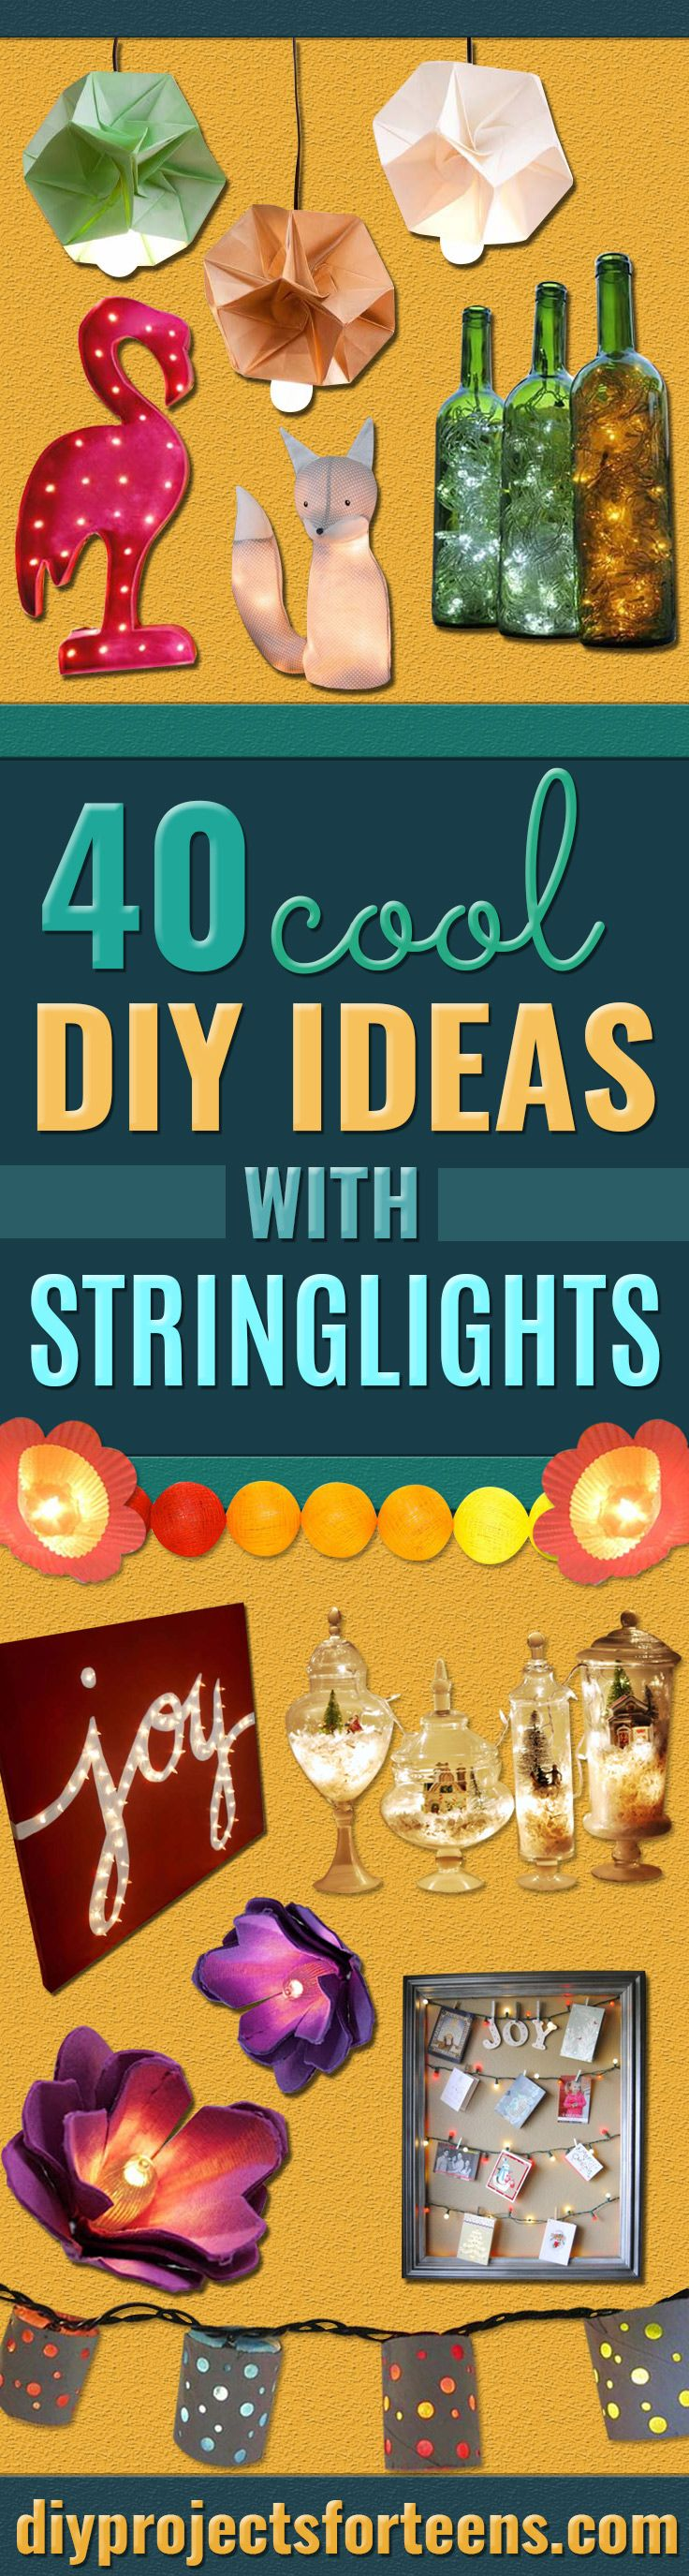 Bedroom christmas lights quotes - 40 Cool Diy Ideas With String Lights